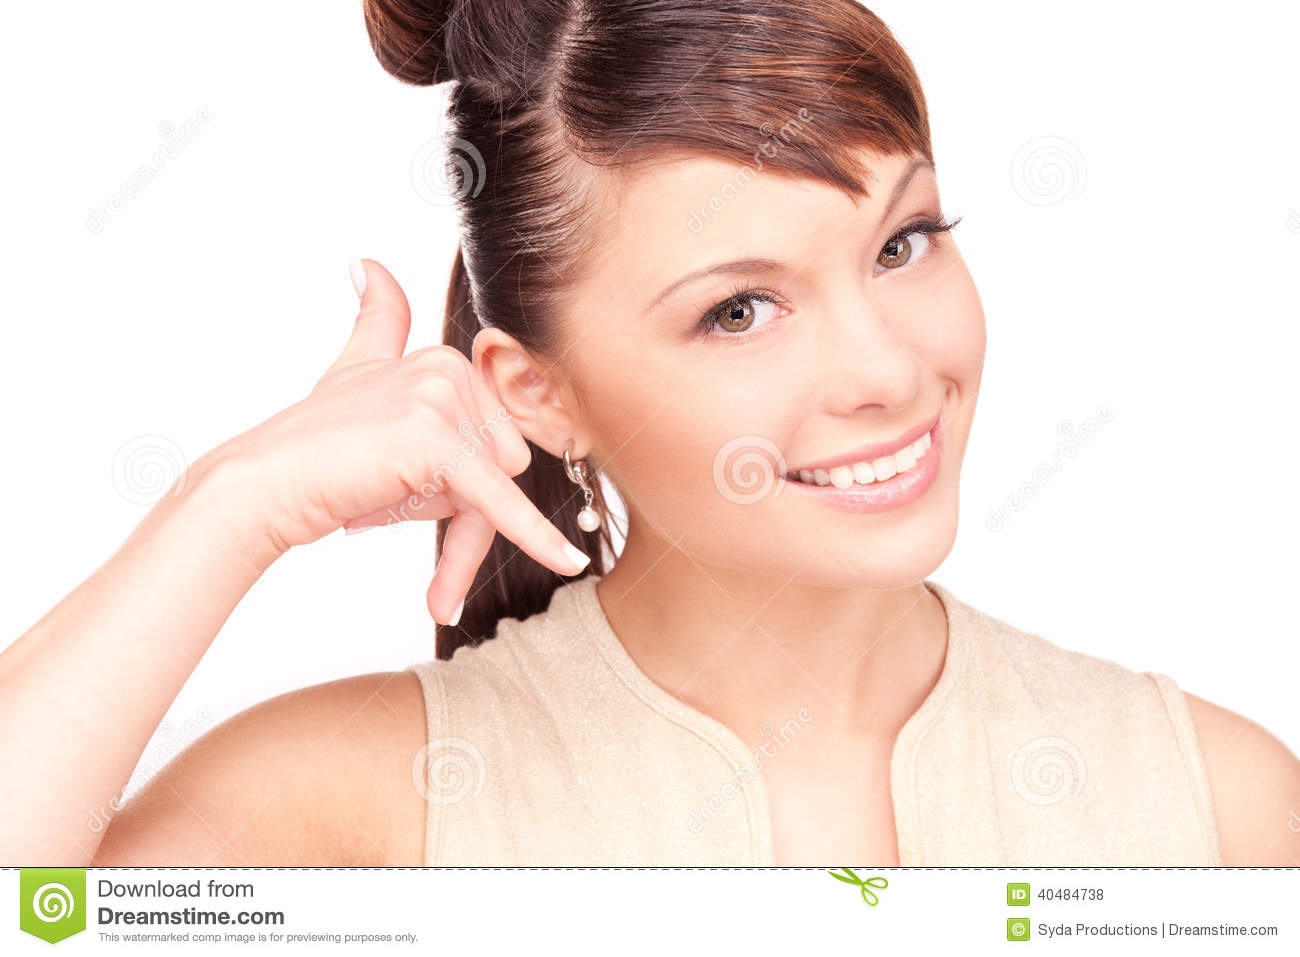 Call Me Stock Photo - Image: 40484738